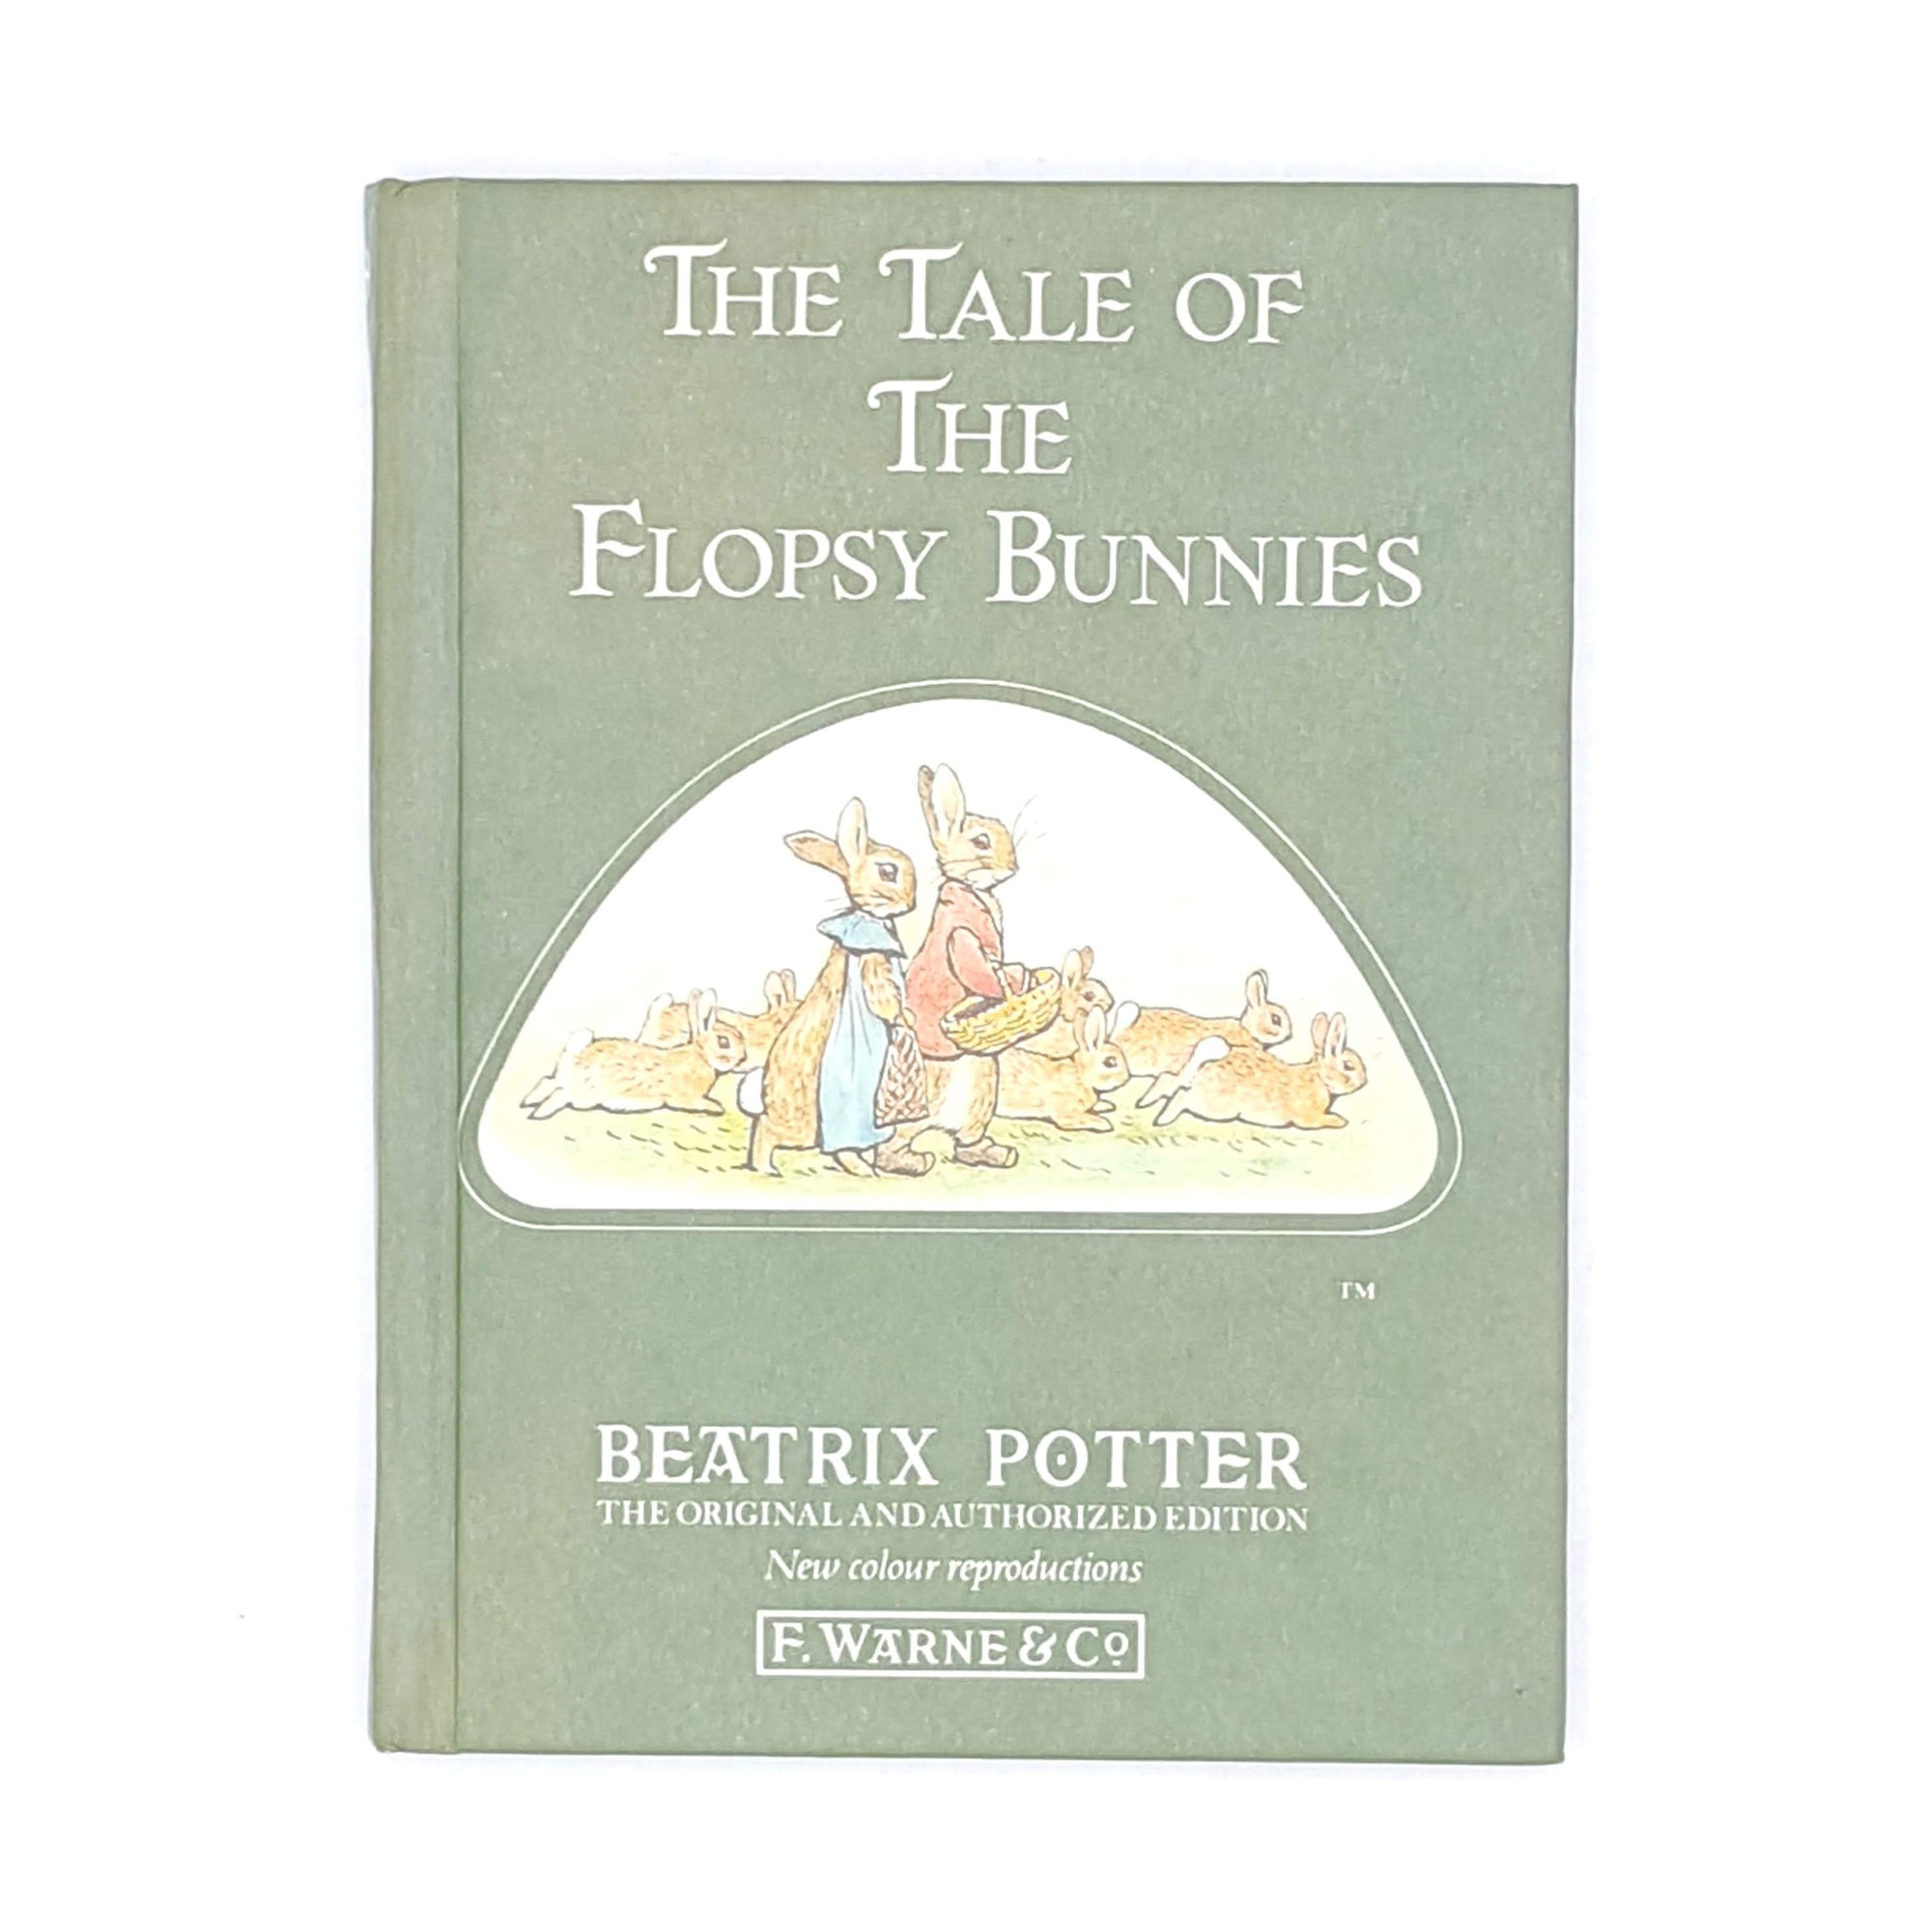 Beatrix Potter's The Tale of the Flopsy Bunnies, green cover